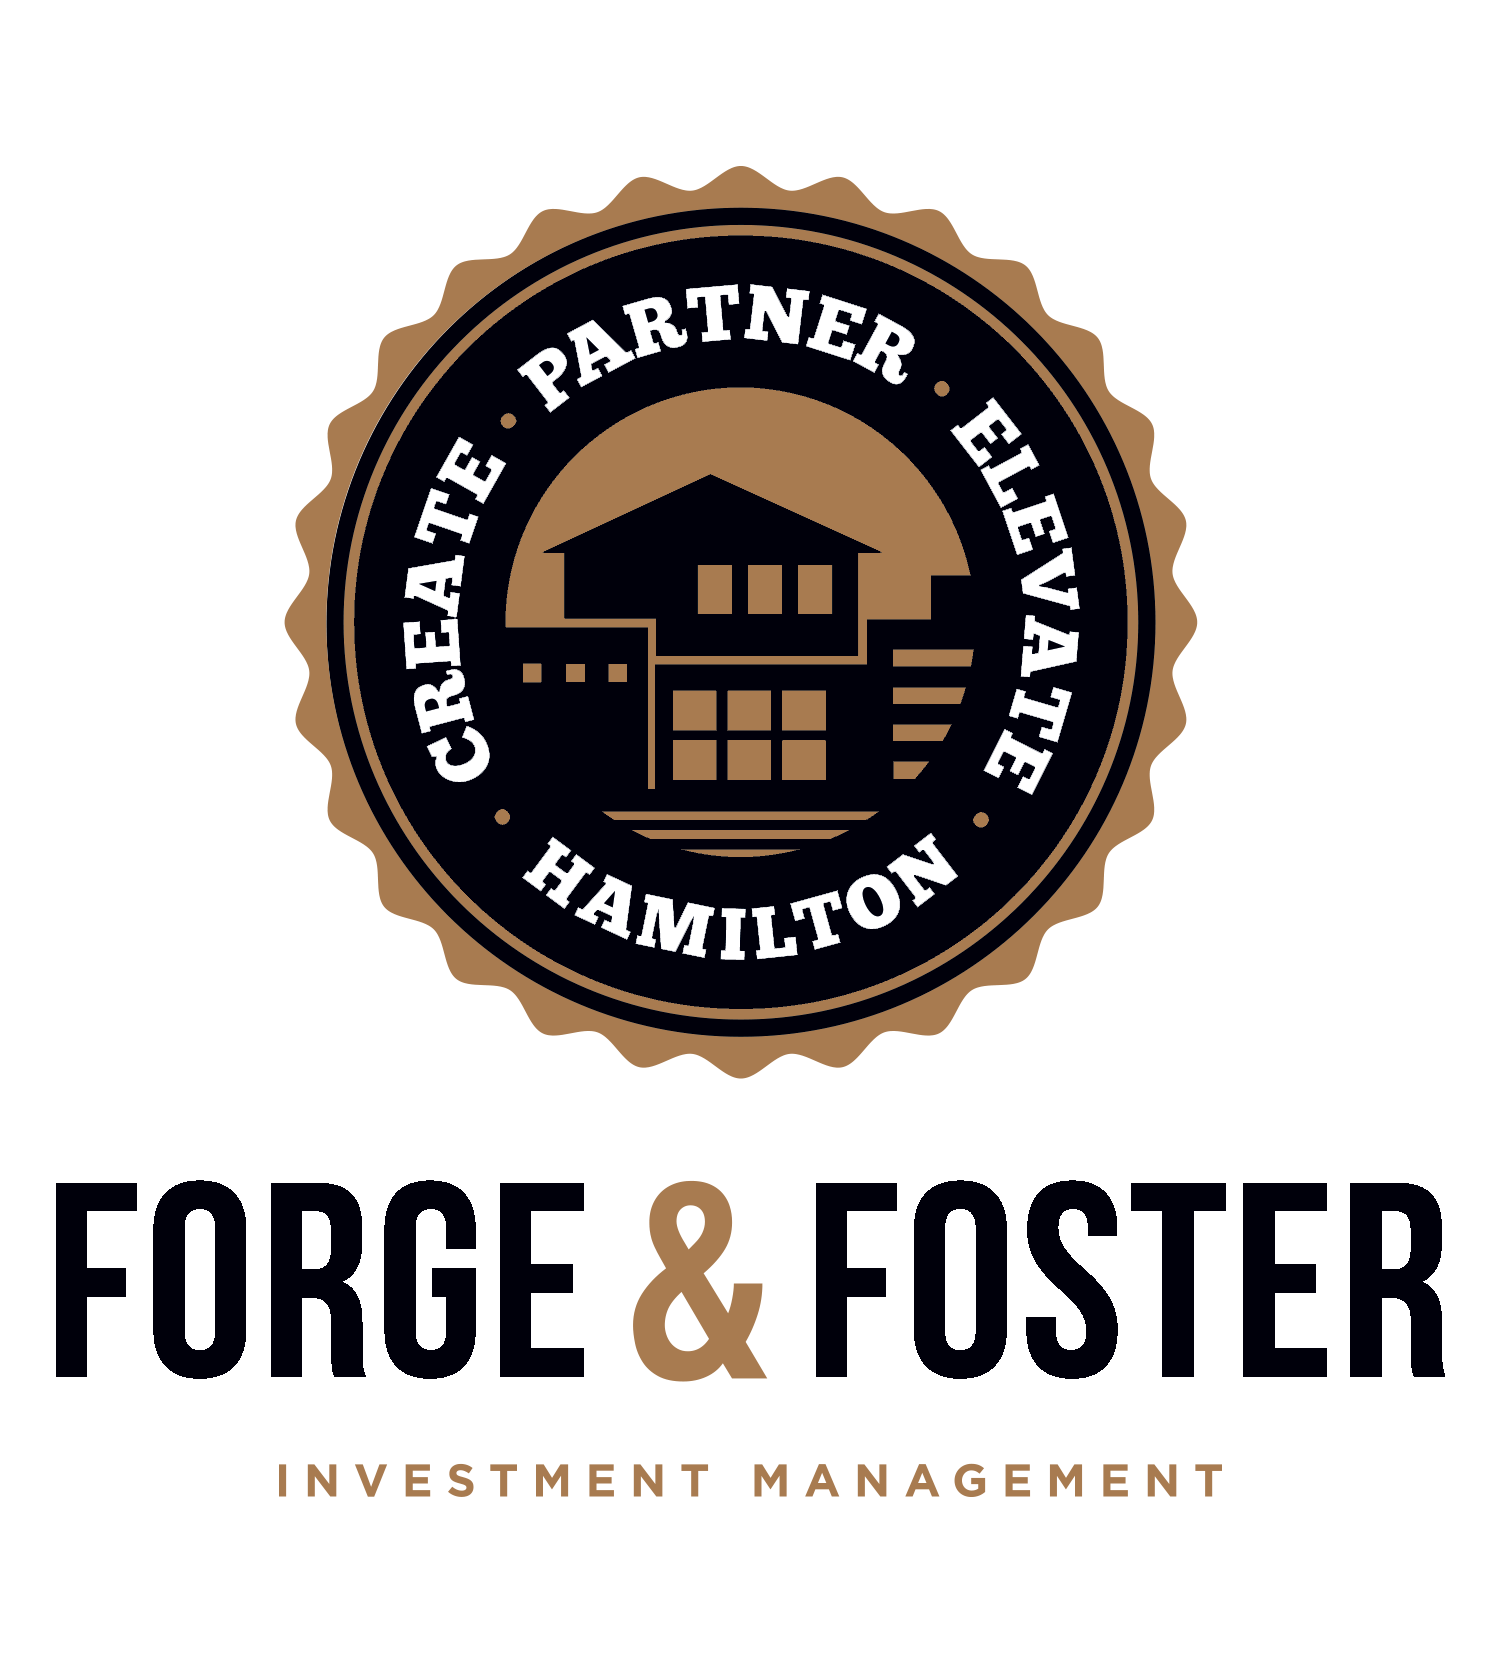 Forge & Foster Investment Management